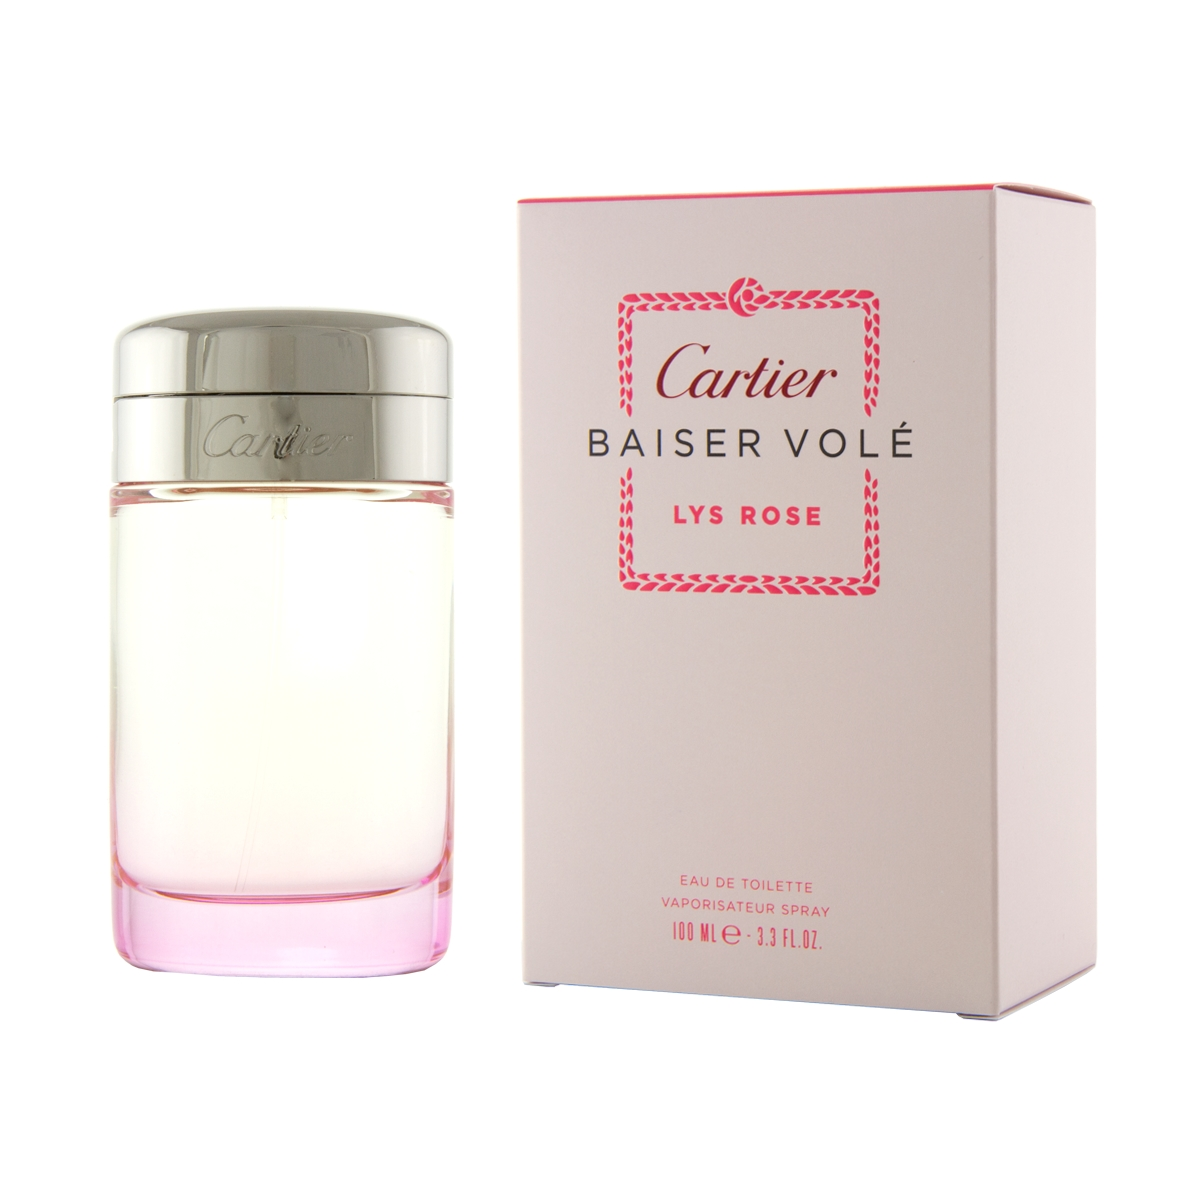 Cartier Baiser Volé Lys Rose Eau De Toilette 100 ml (woman)